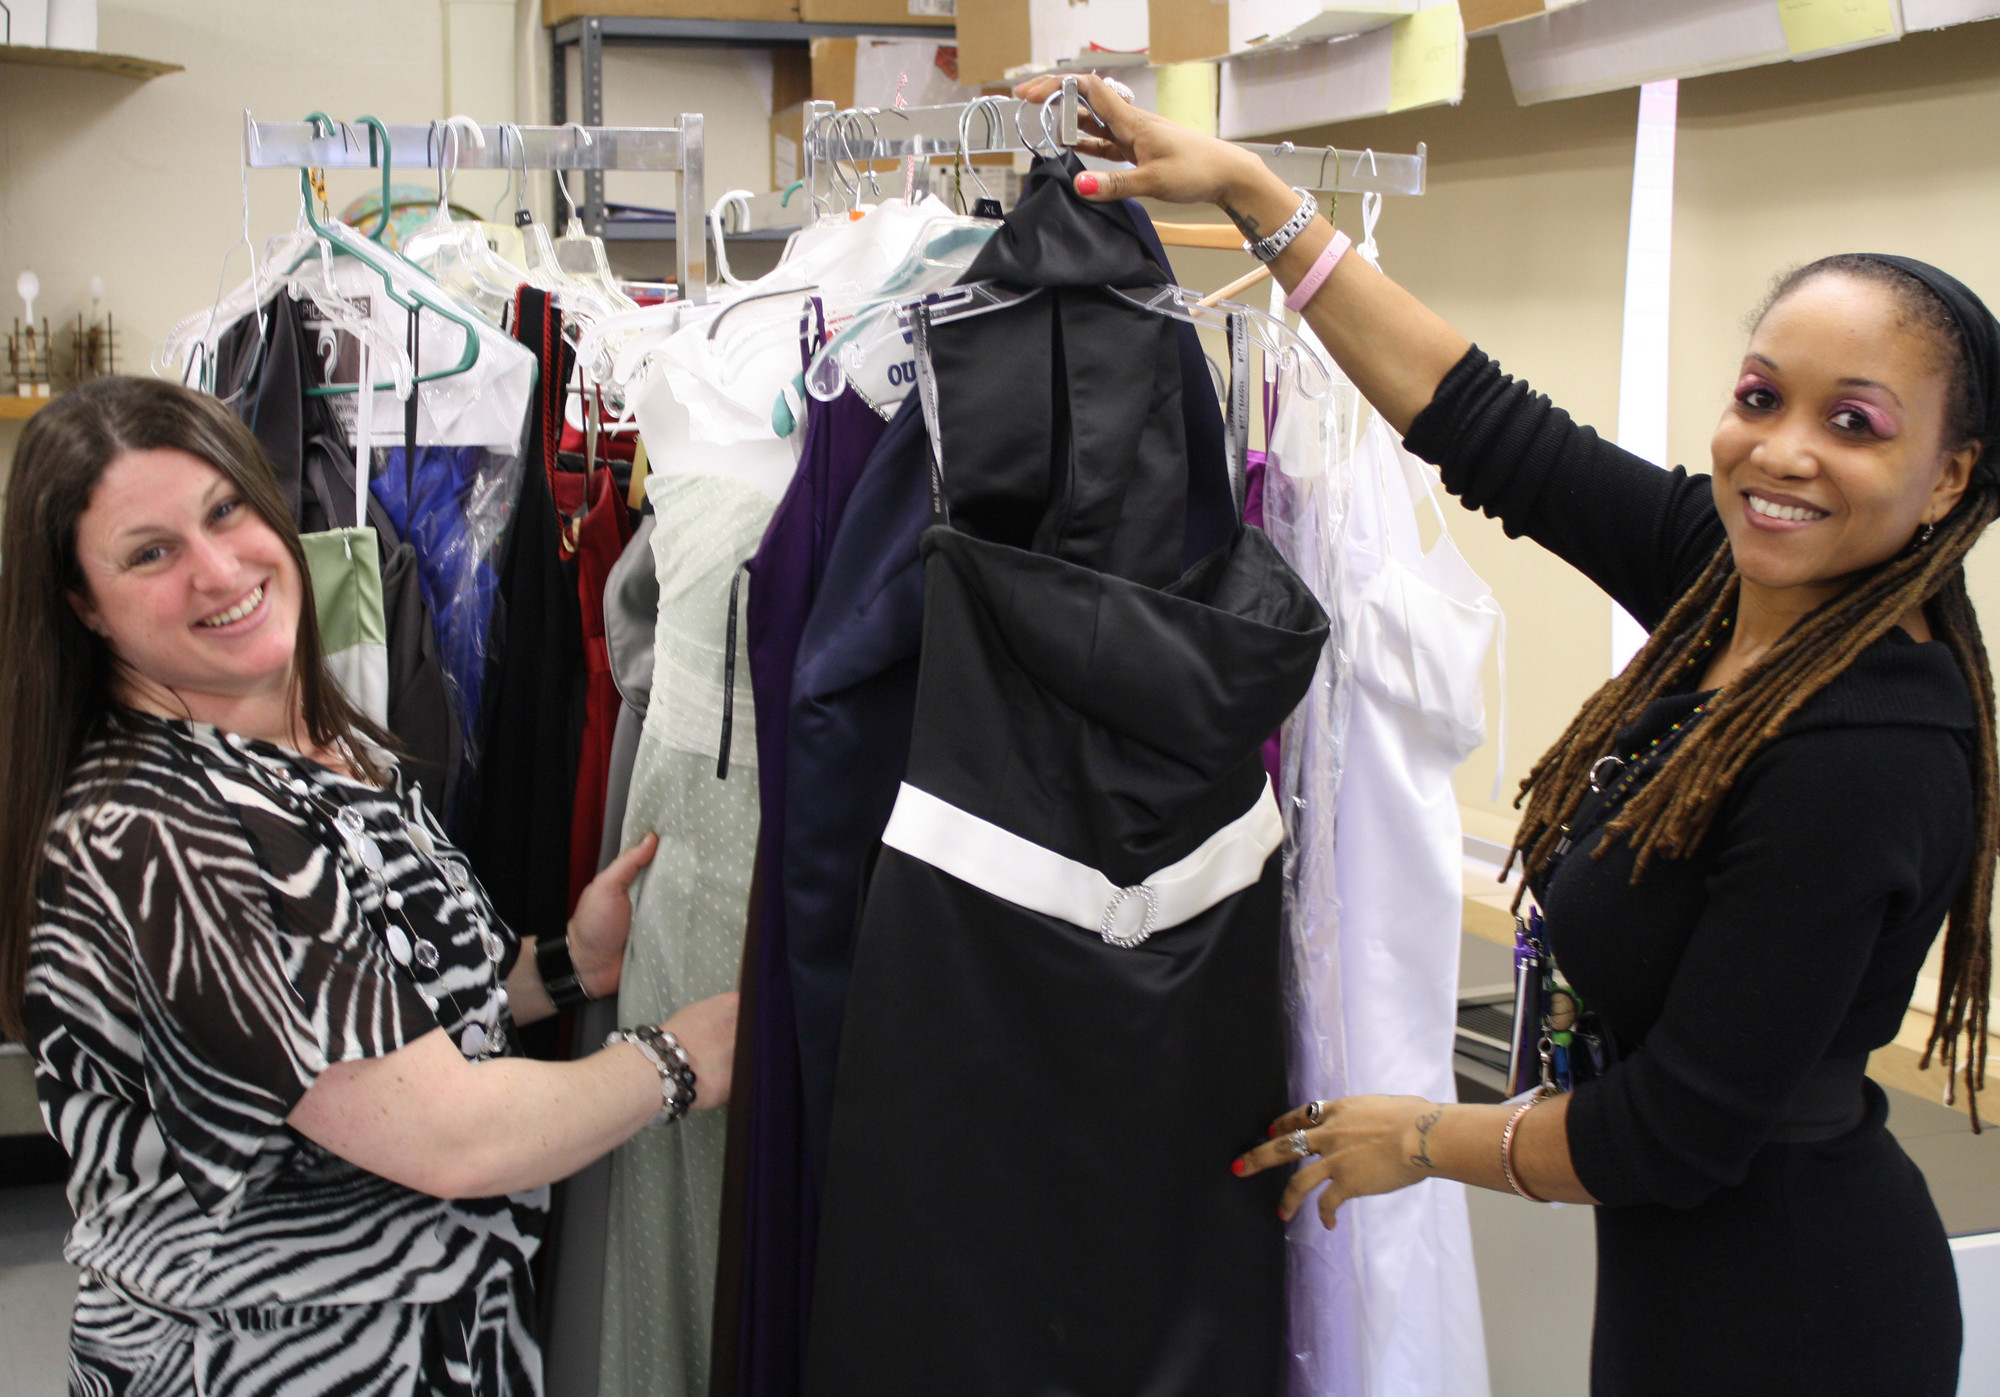 Teachers Adeline Scibelli and Nia Thompson helped 